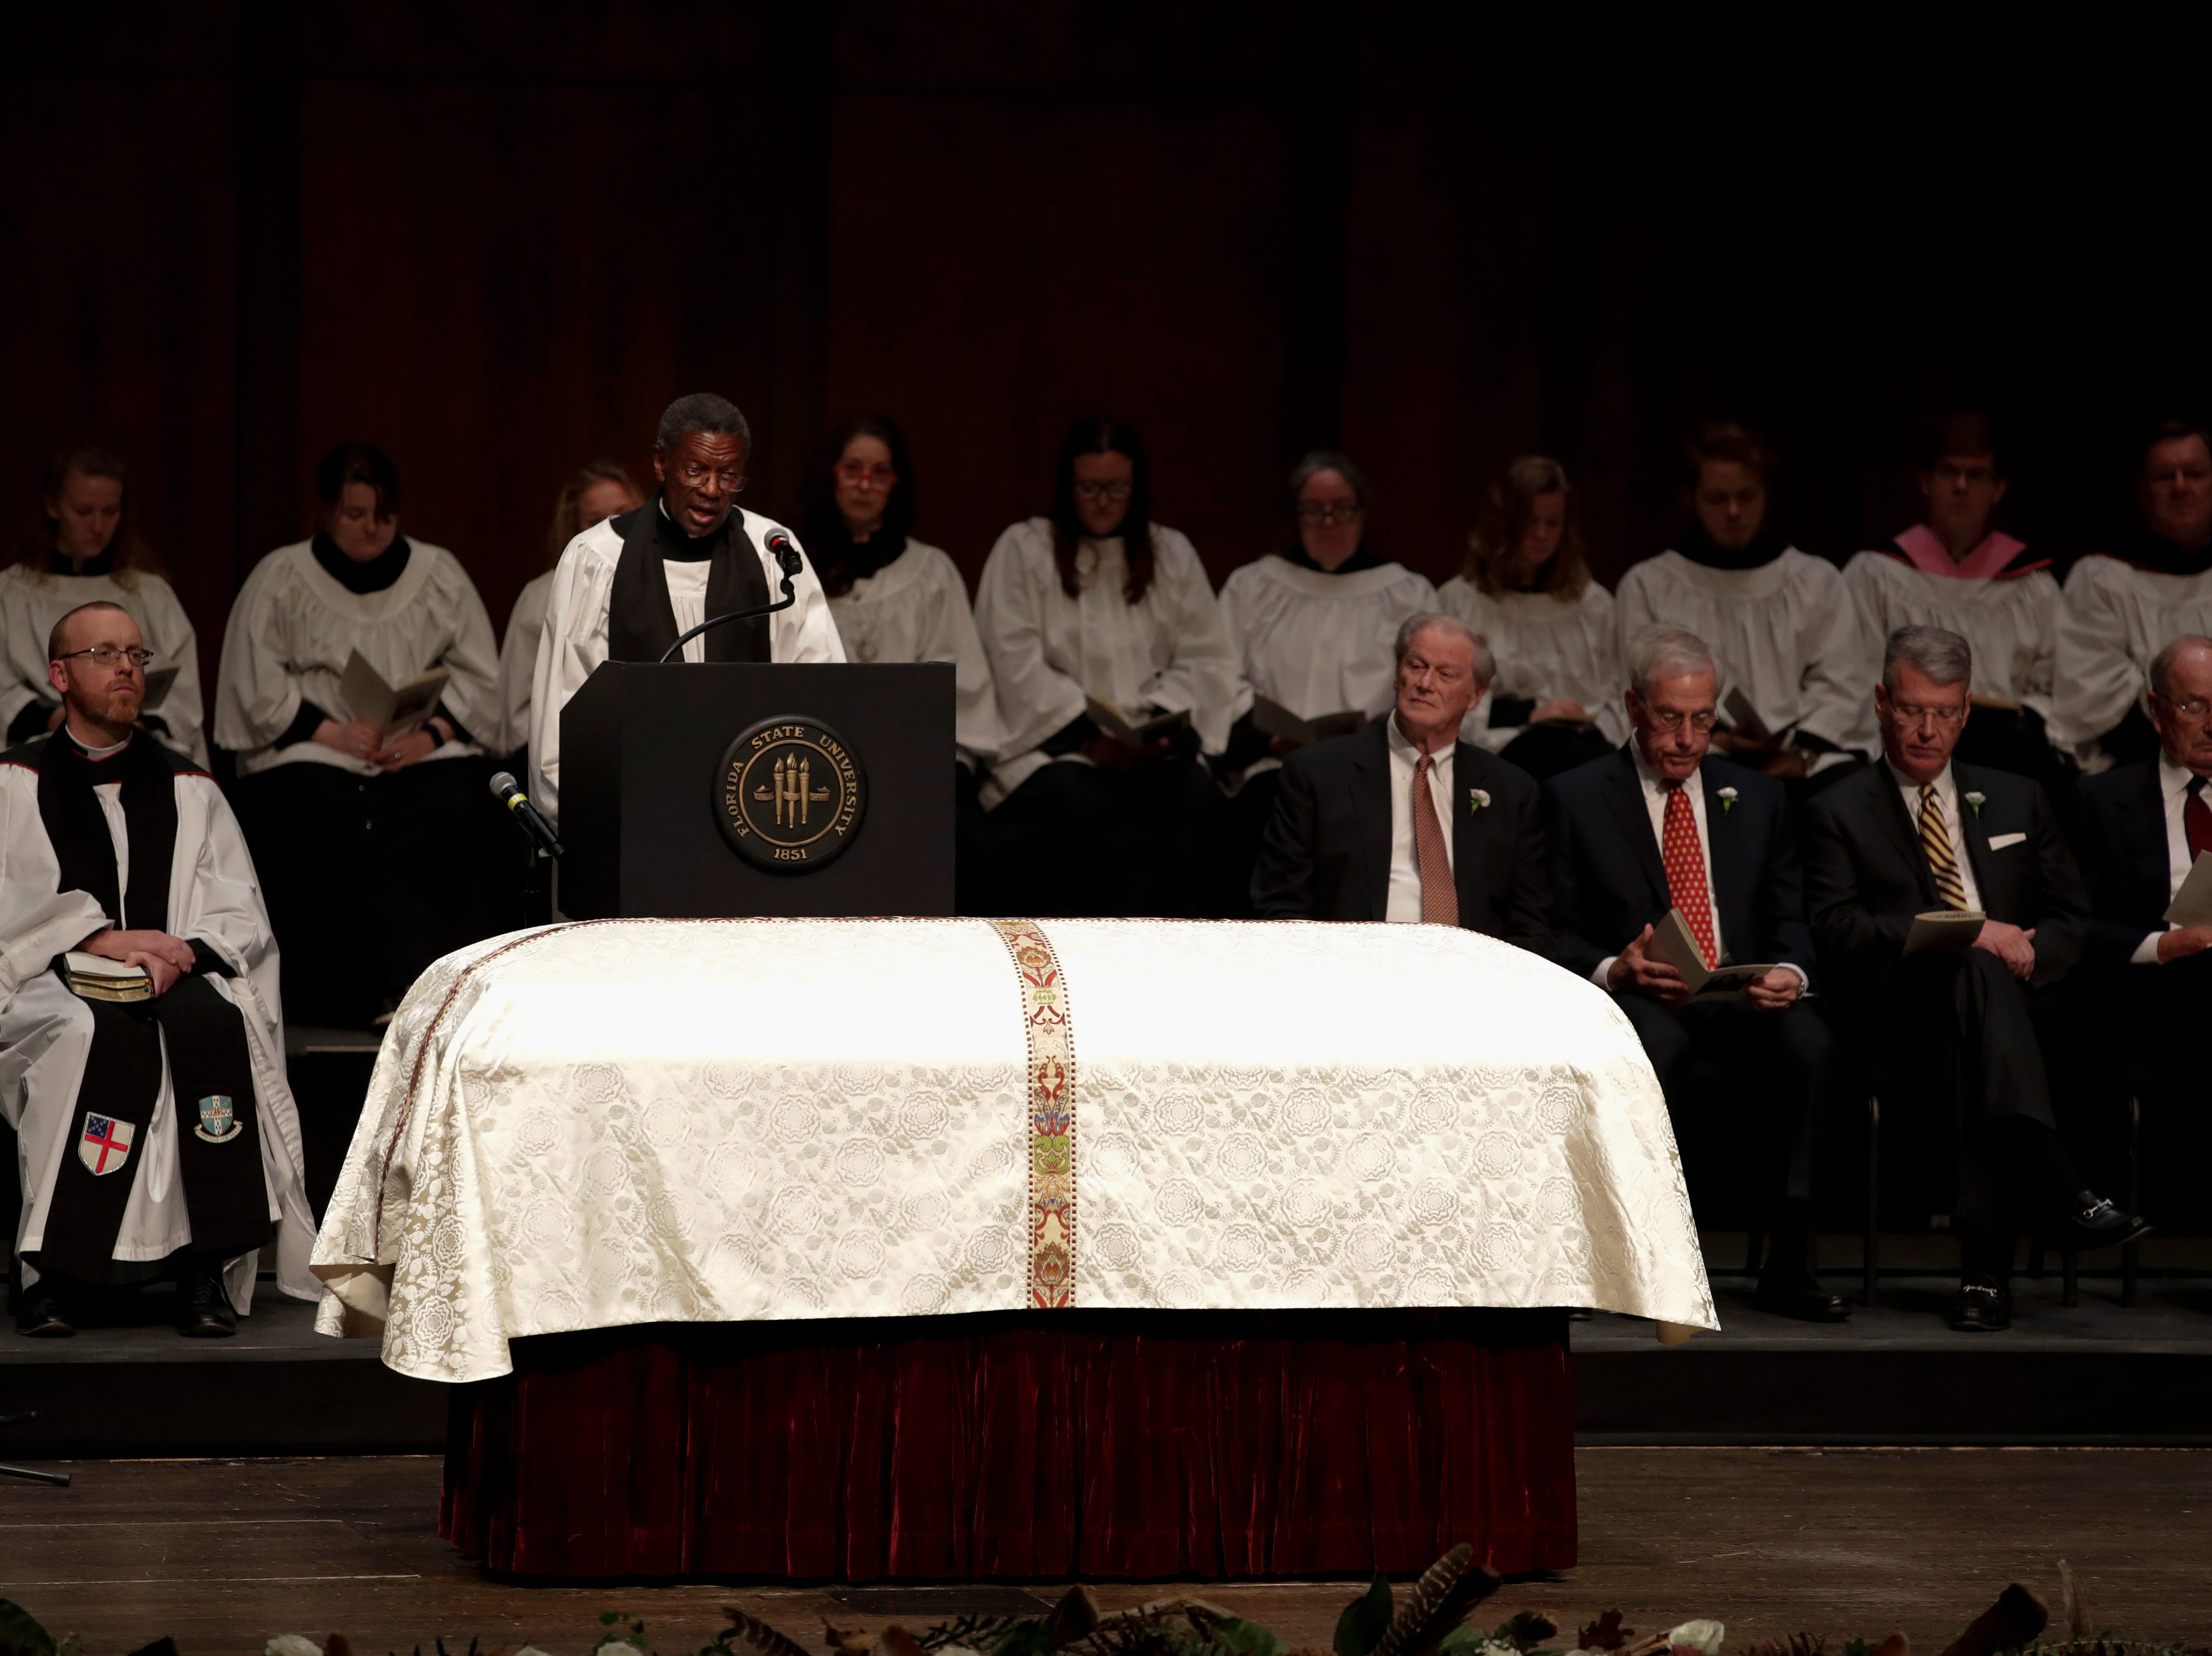 Rev. Joe Bakker reads during a funeral service for Florida State University President Emeritus T.K. Wetherell held at Ruby Diamond Concert Hall Friday, Dec. 21, 2018.